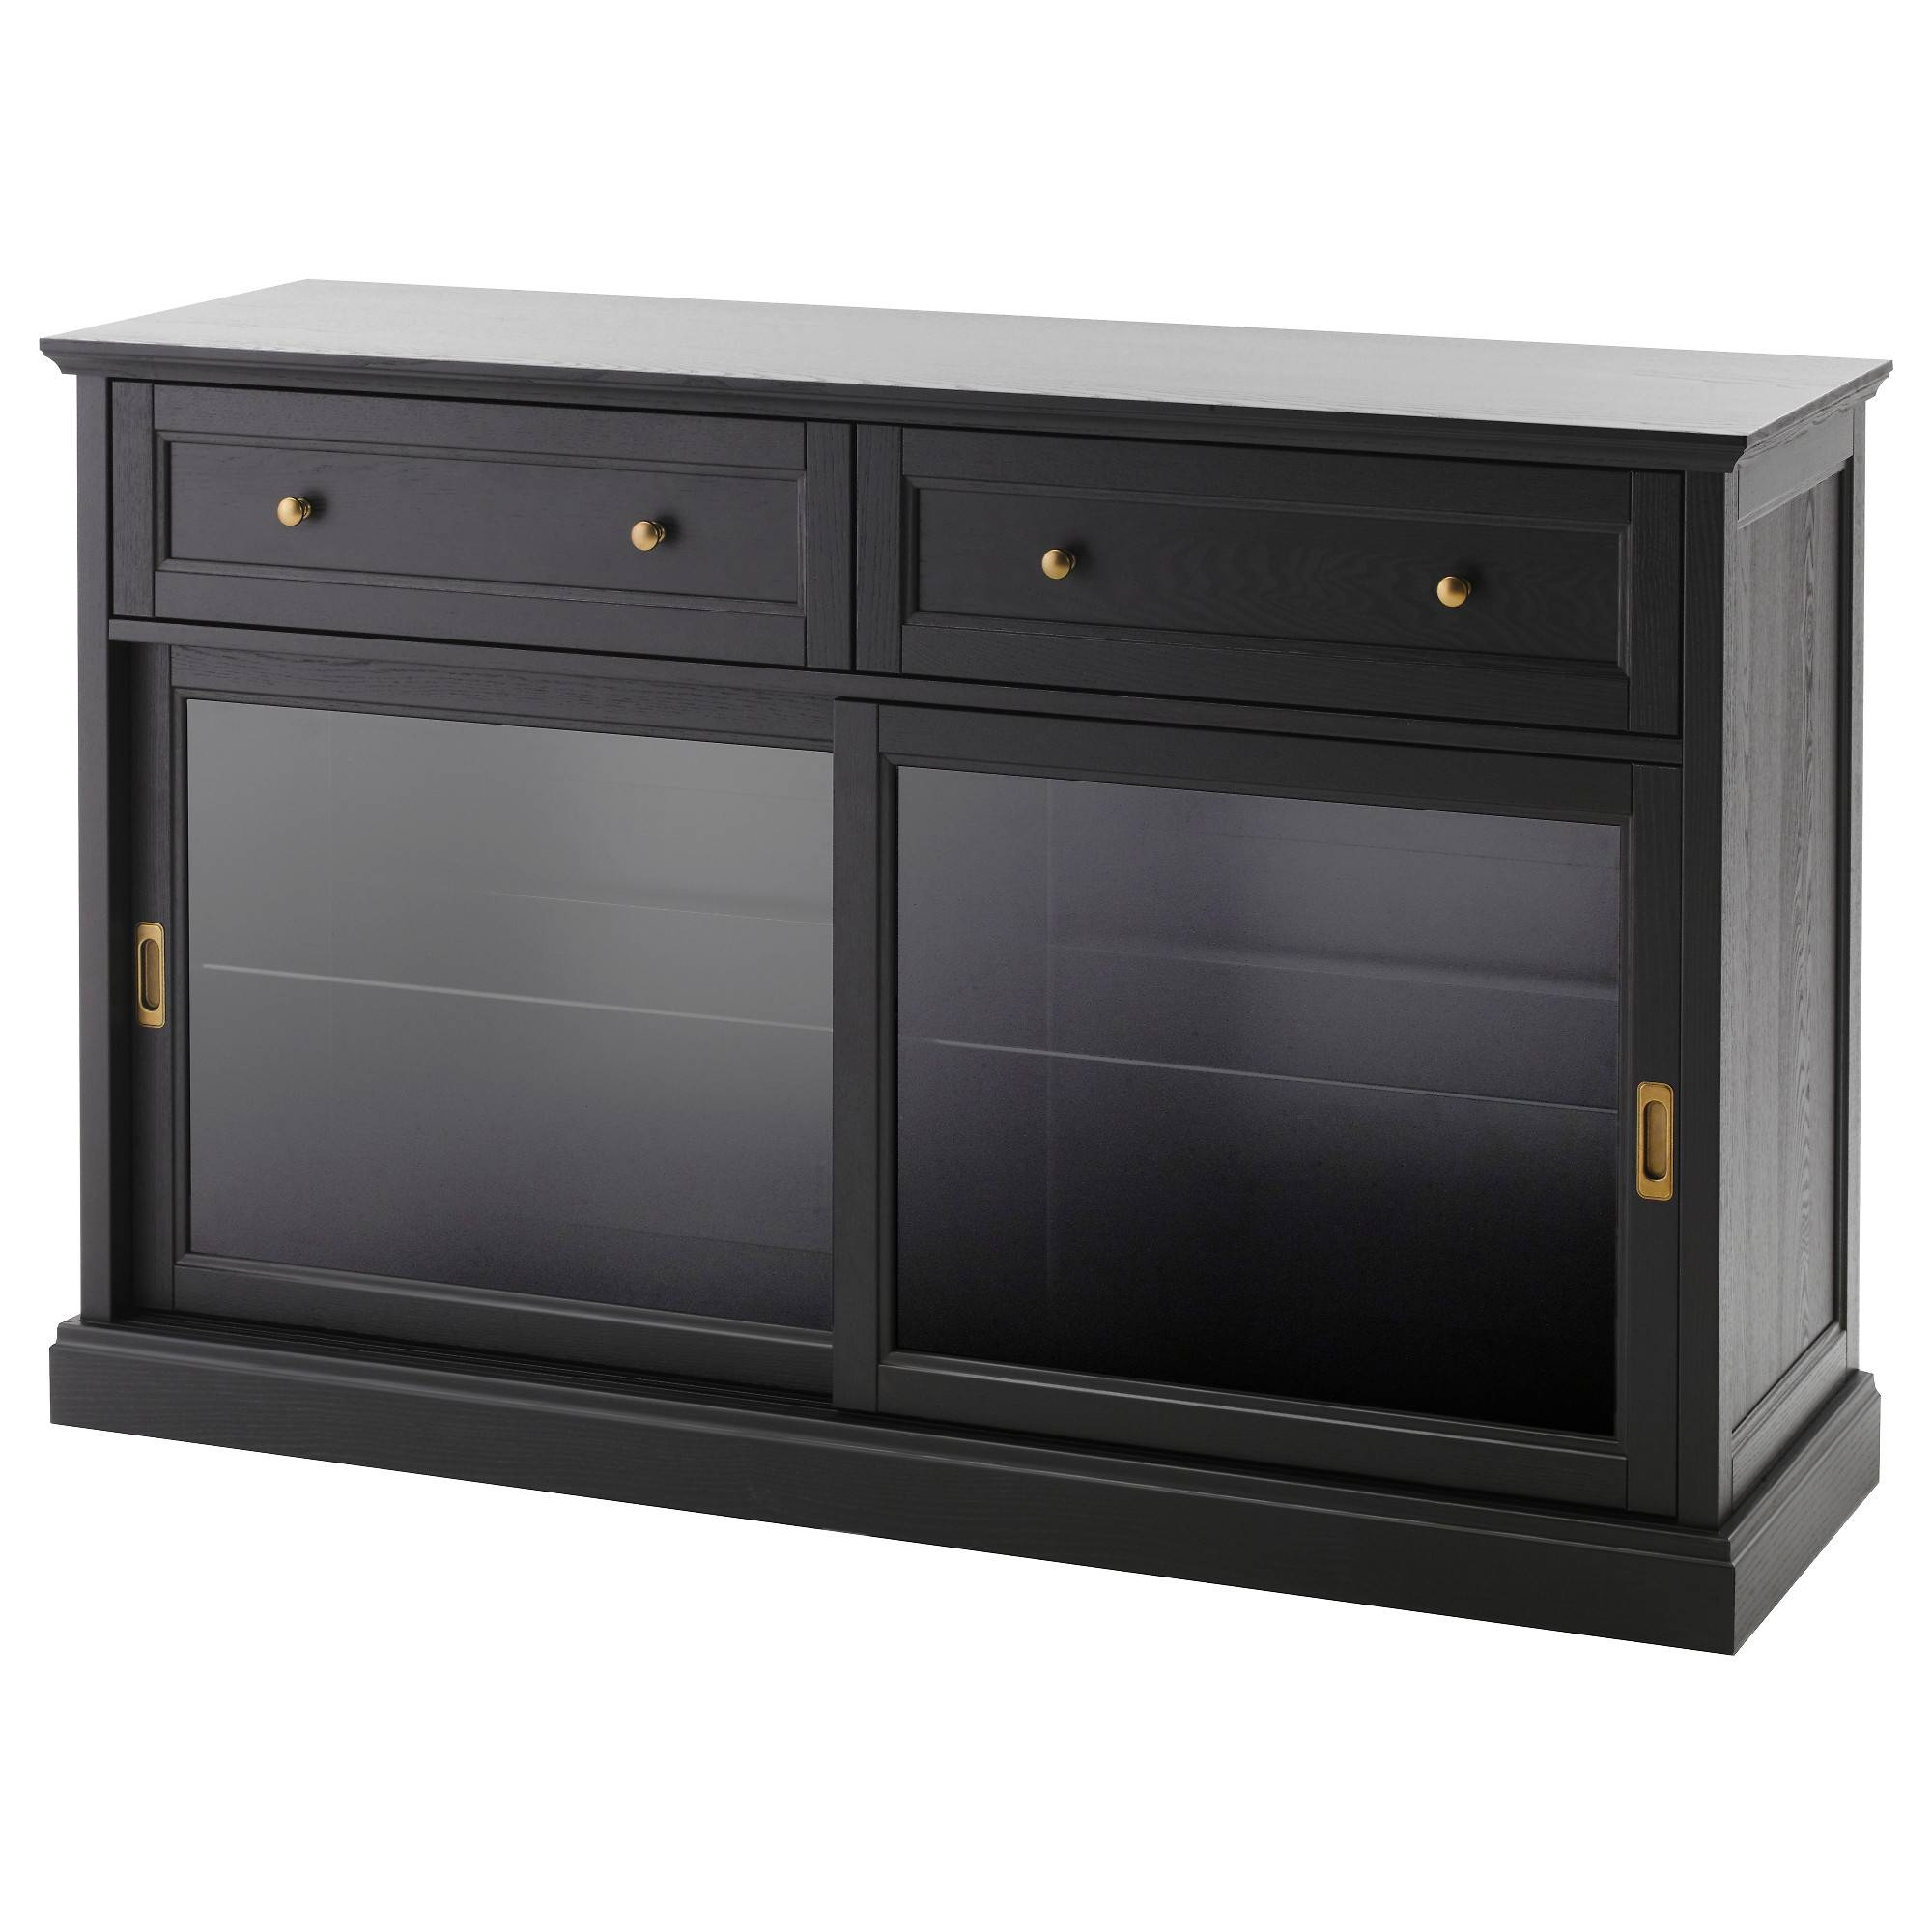 Buffet Tables & Sideboards - Ikea with 6 Foot Sideboards (Image 7 of 15)